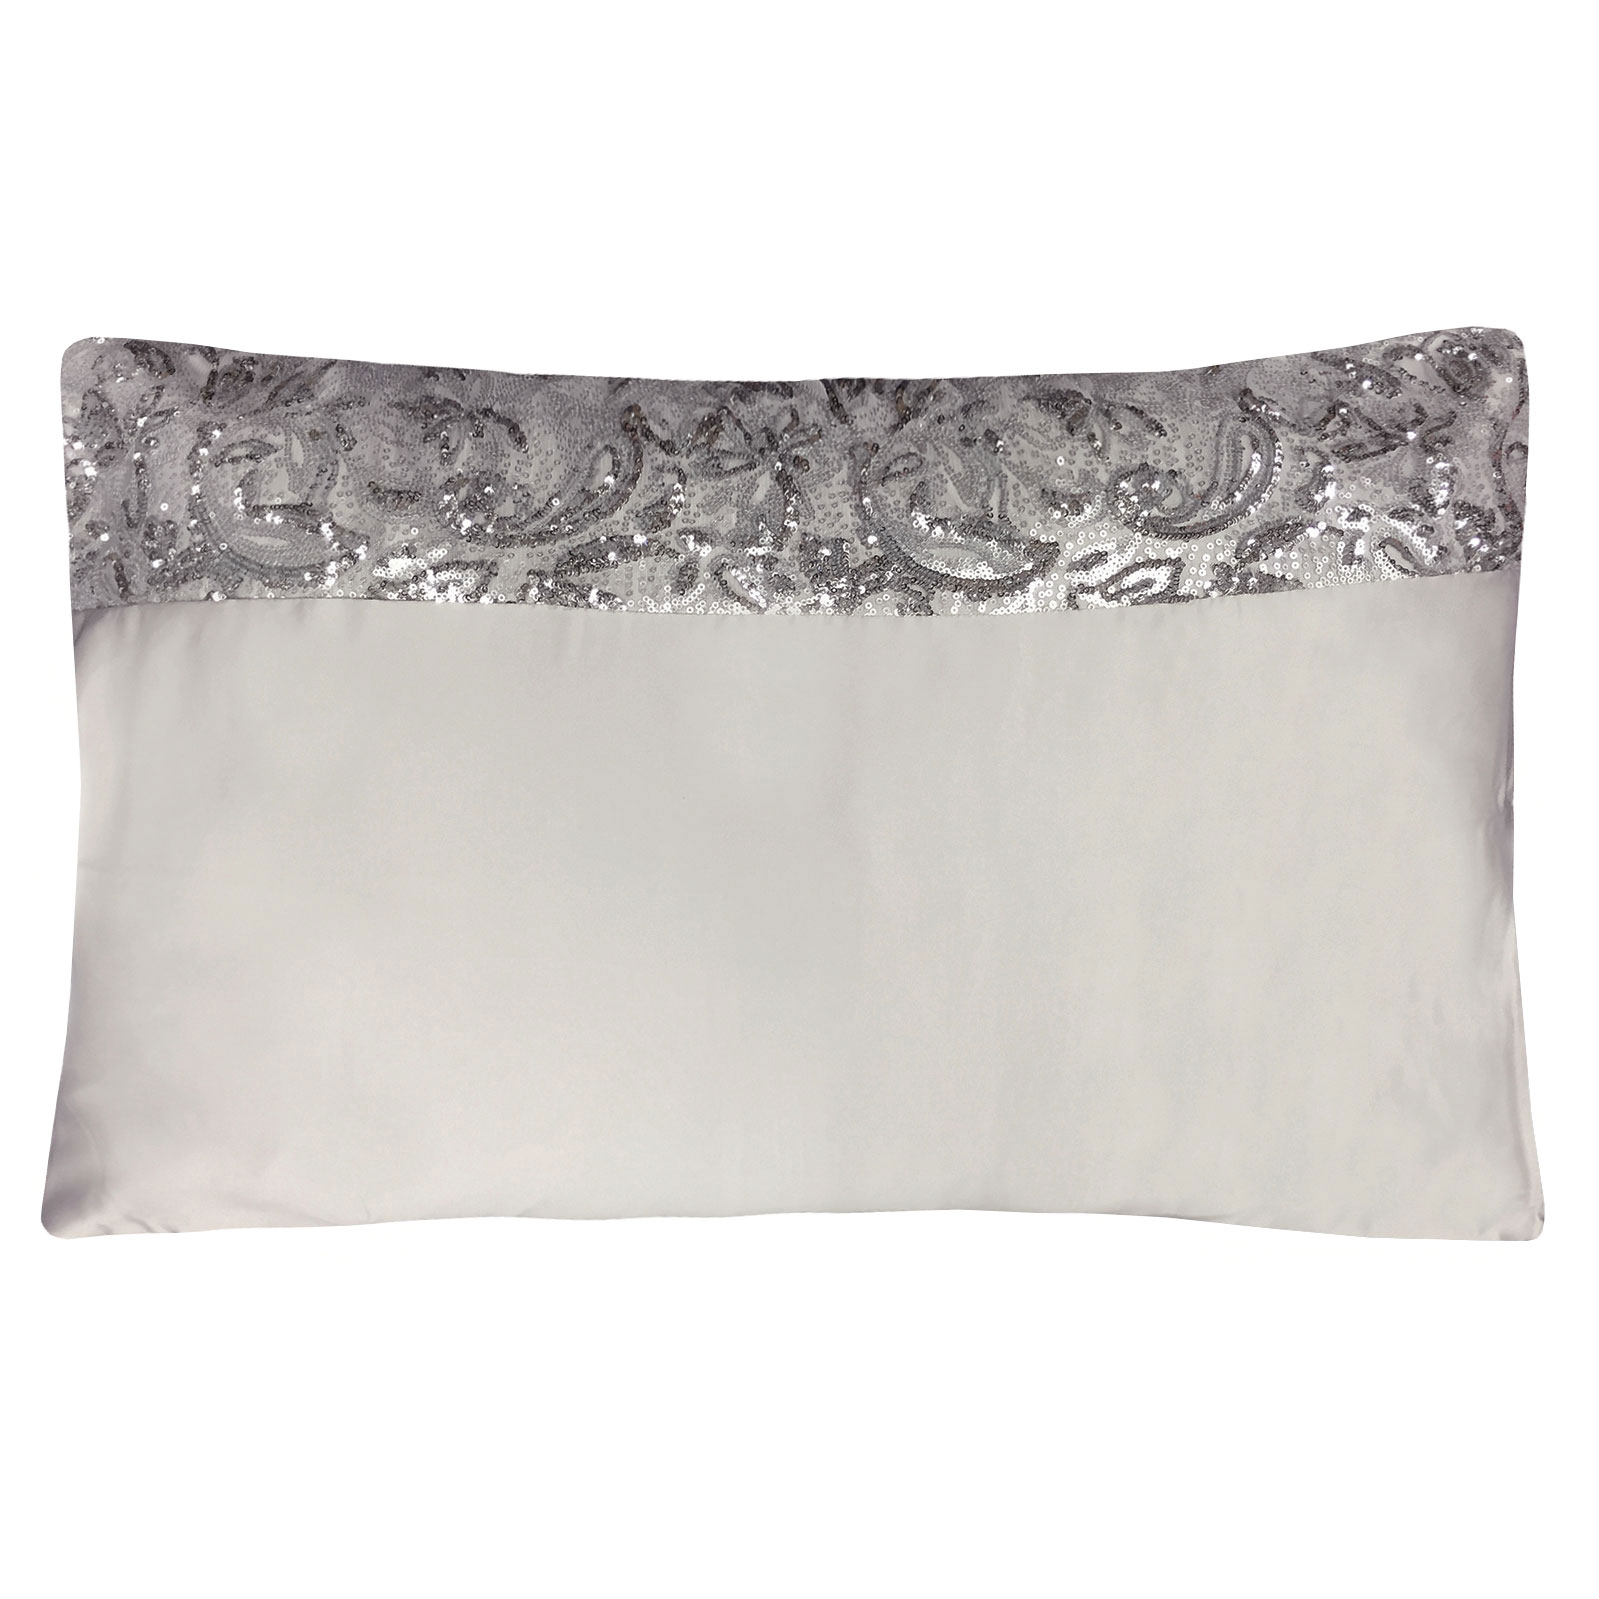 alexa kylie minogue luxury pillow case with scroll sequin